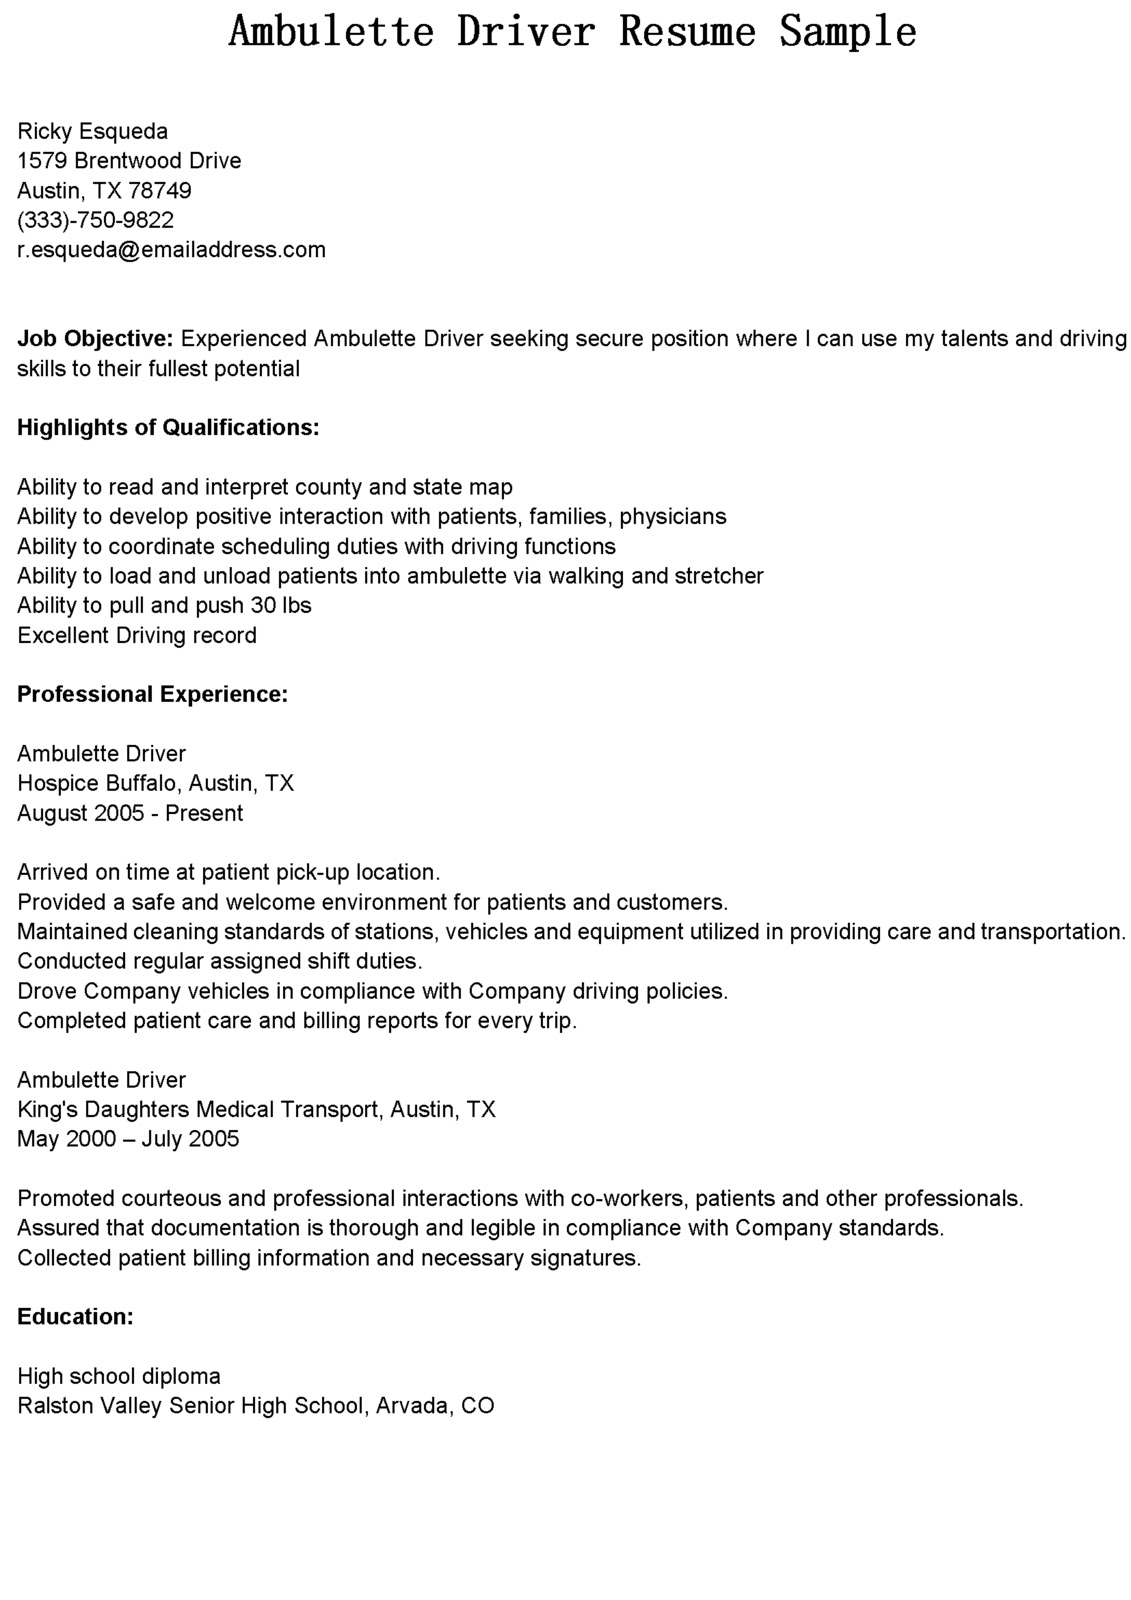 Cdl Driver Resume Sample Driver Resumes Ambulette Driver Resume Sample